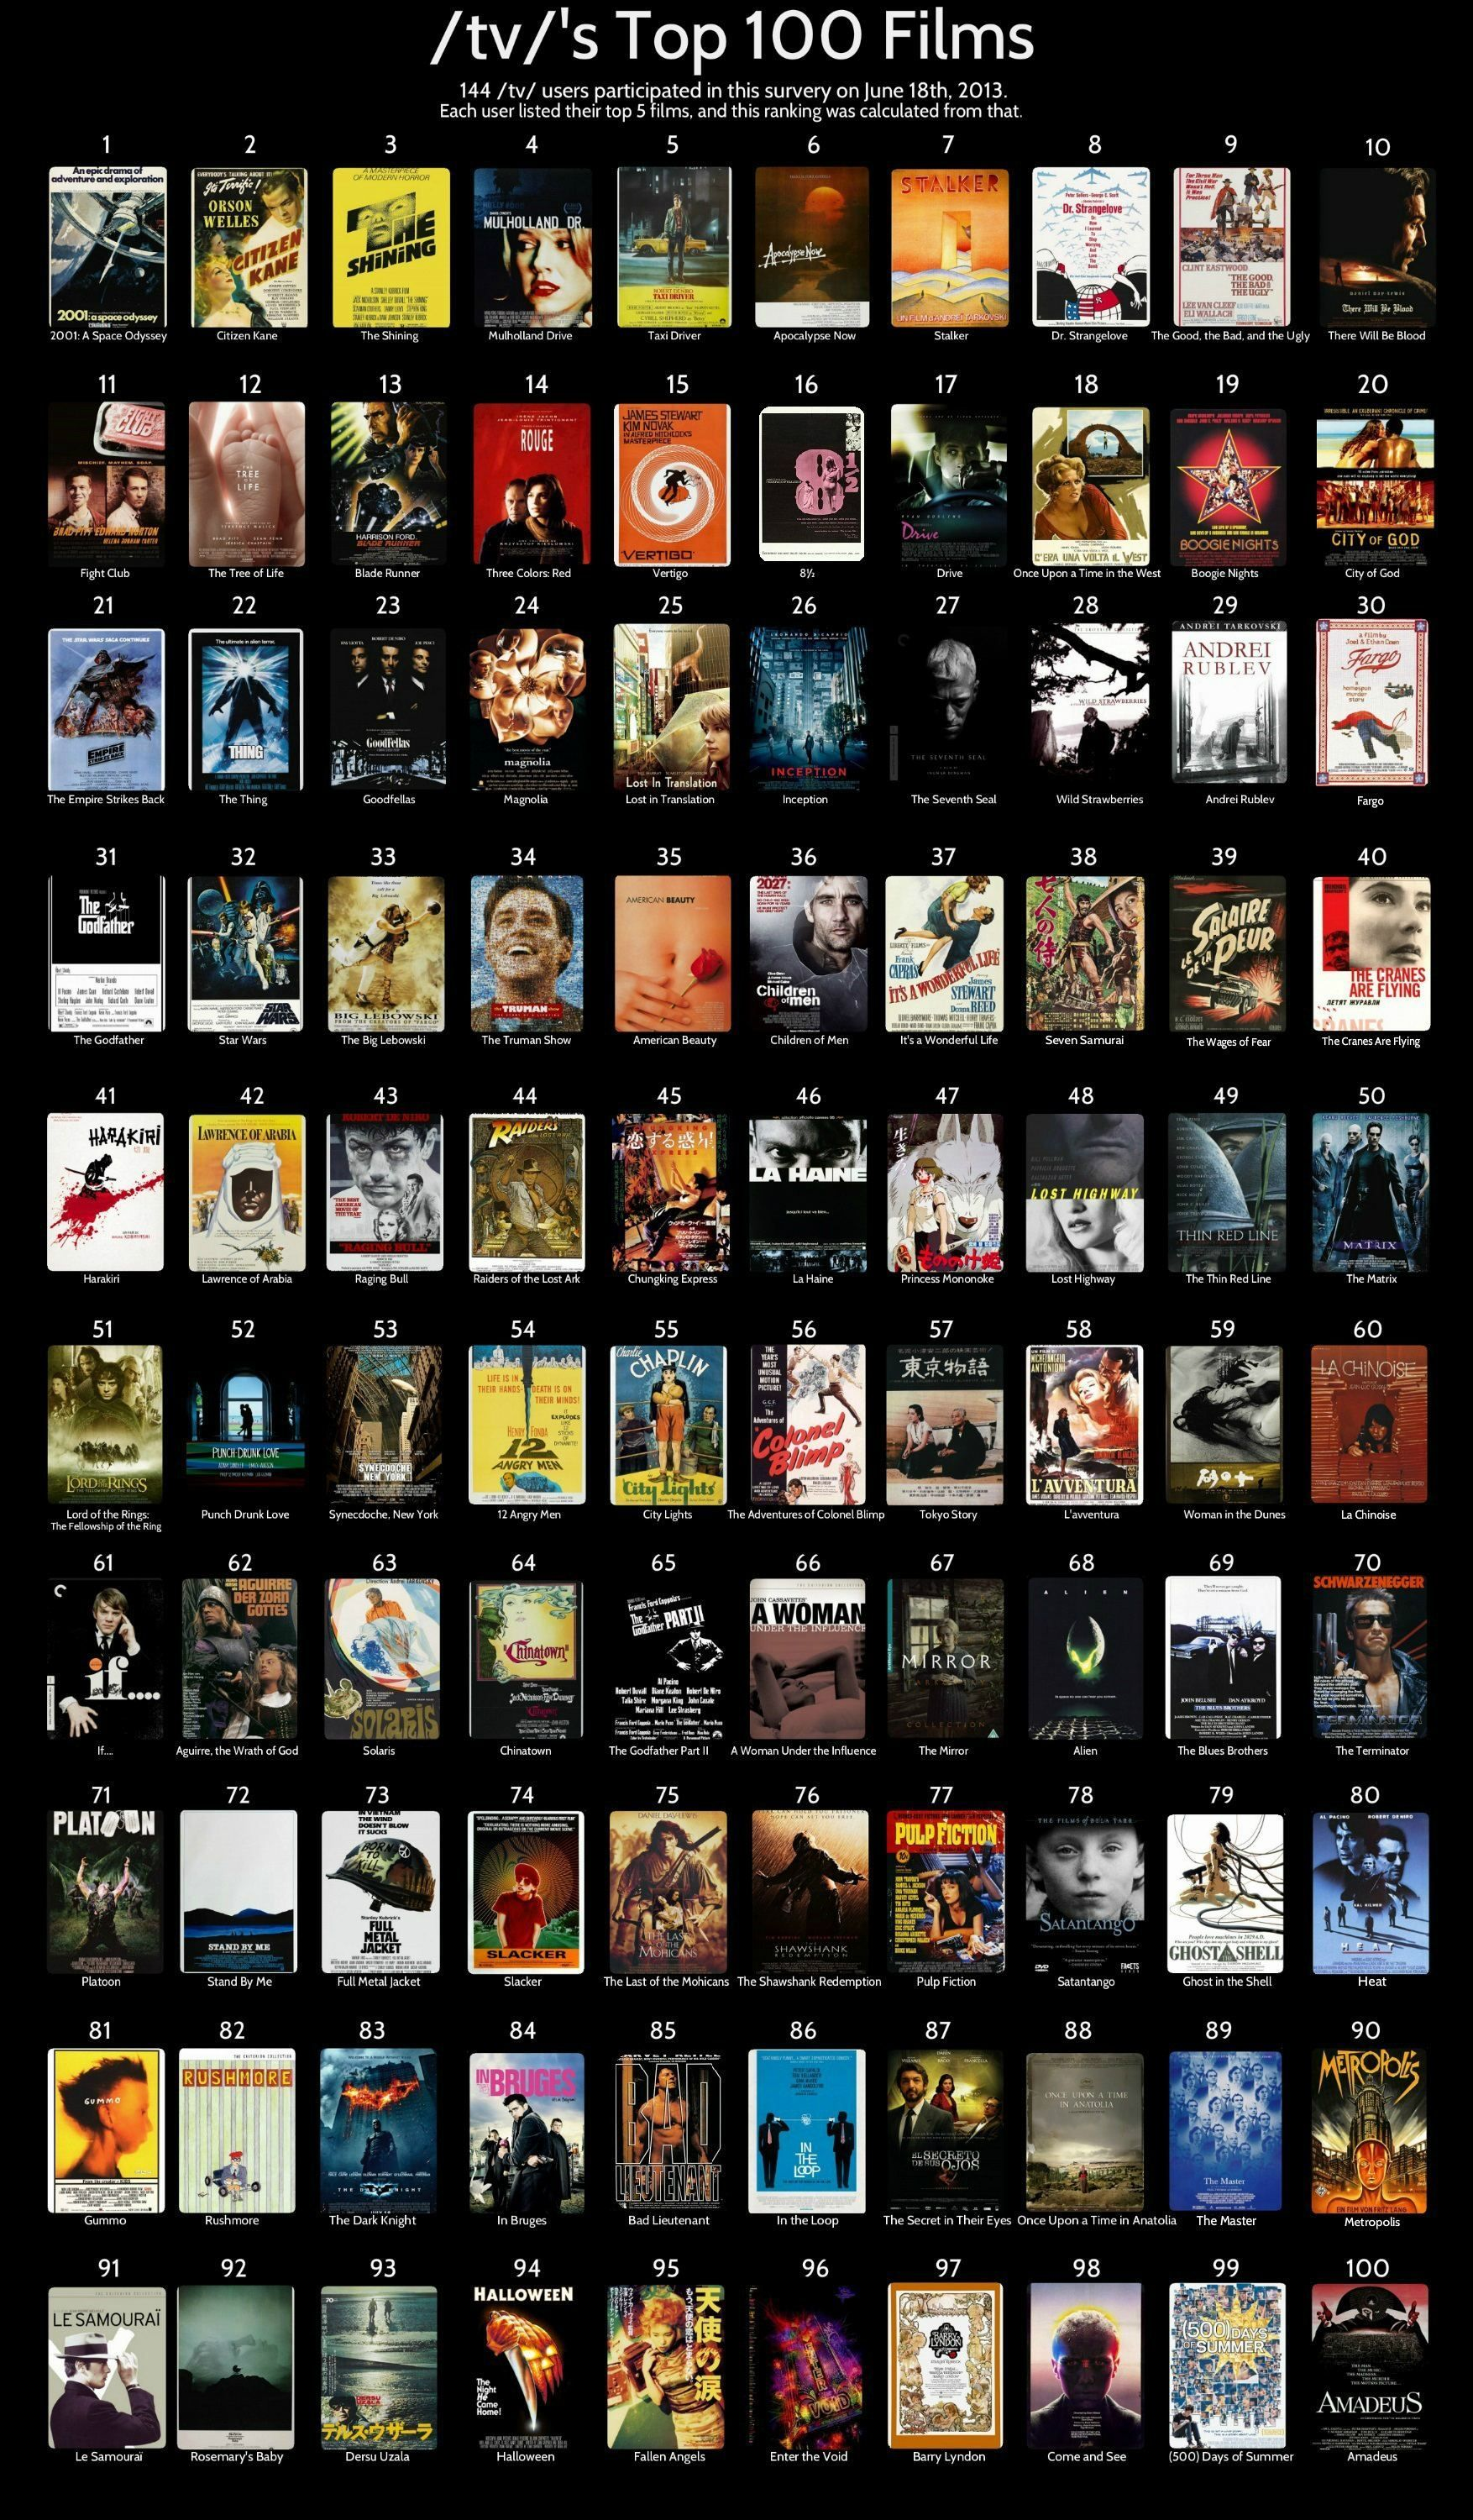 Netflixmovies With Images Oscar Movies Top 100 Films